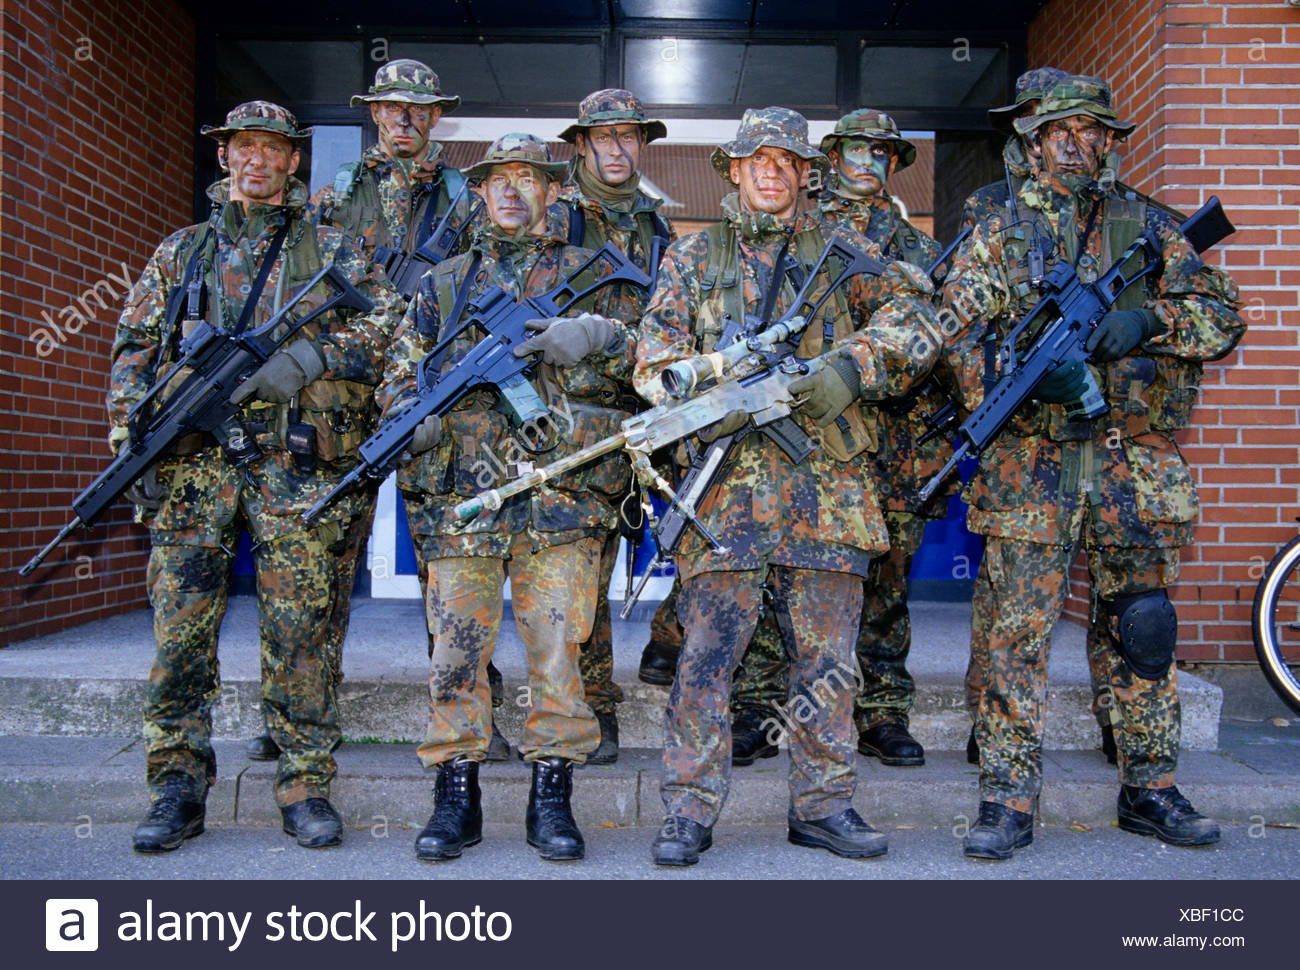 Soldiers belonging to the Kampfschwimmerkompanie, combat swimmers special unit standing outside their barracks - Stock Image